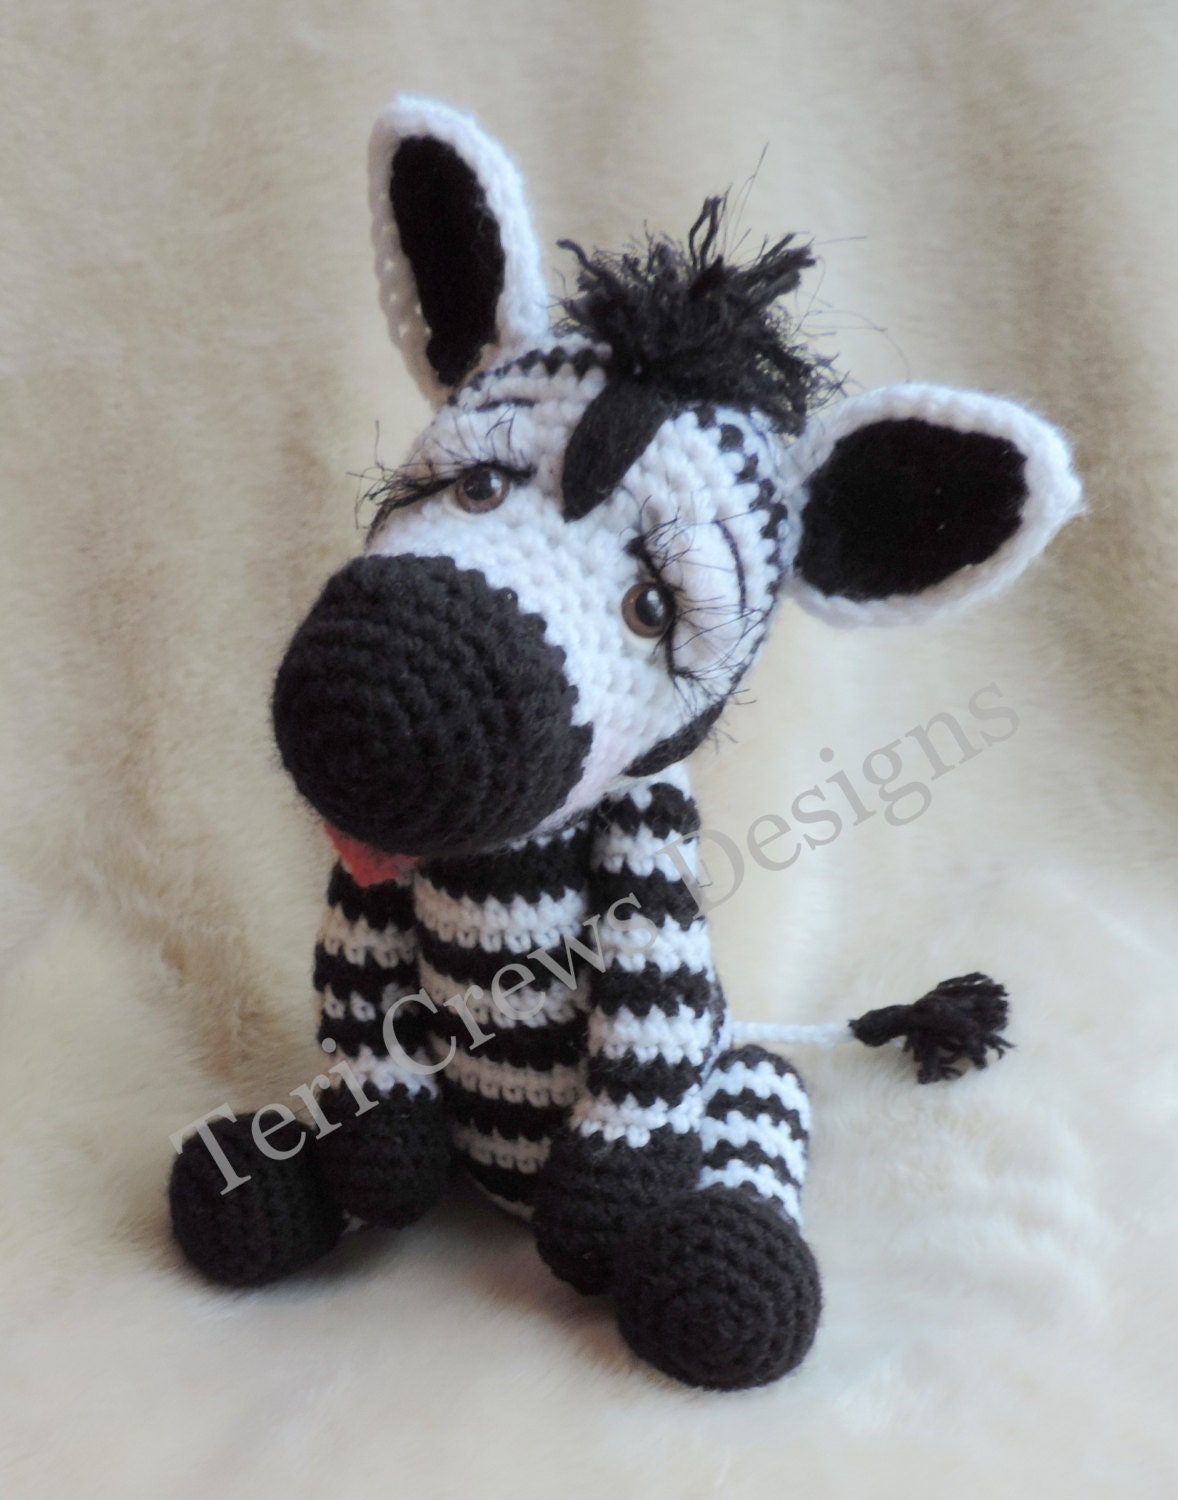 Simply Cute Zebra Crochet Pattern by Teri Crews